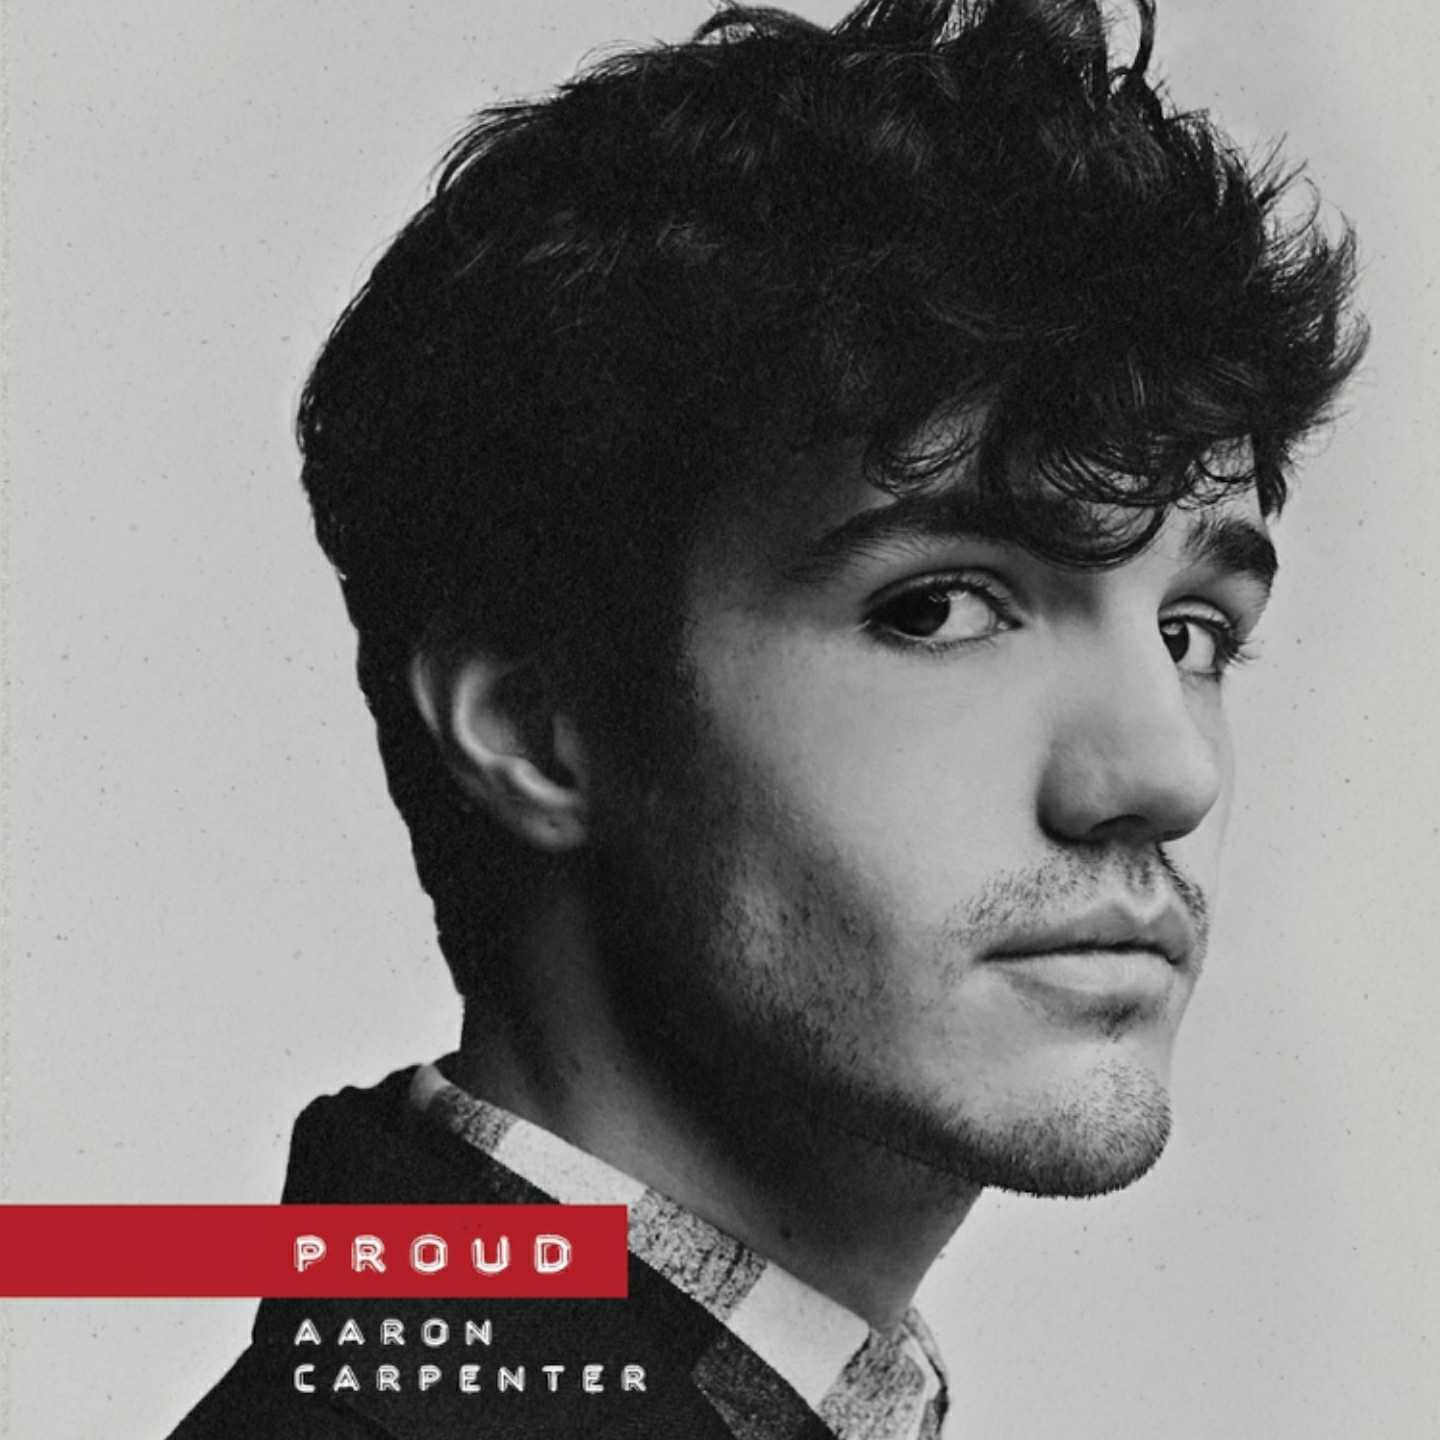 Capitol Records, Aaron Carpenter, 360 MAGAZINE